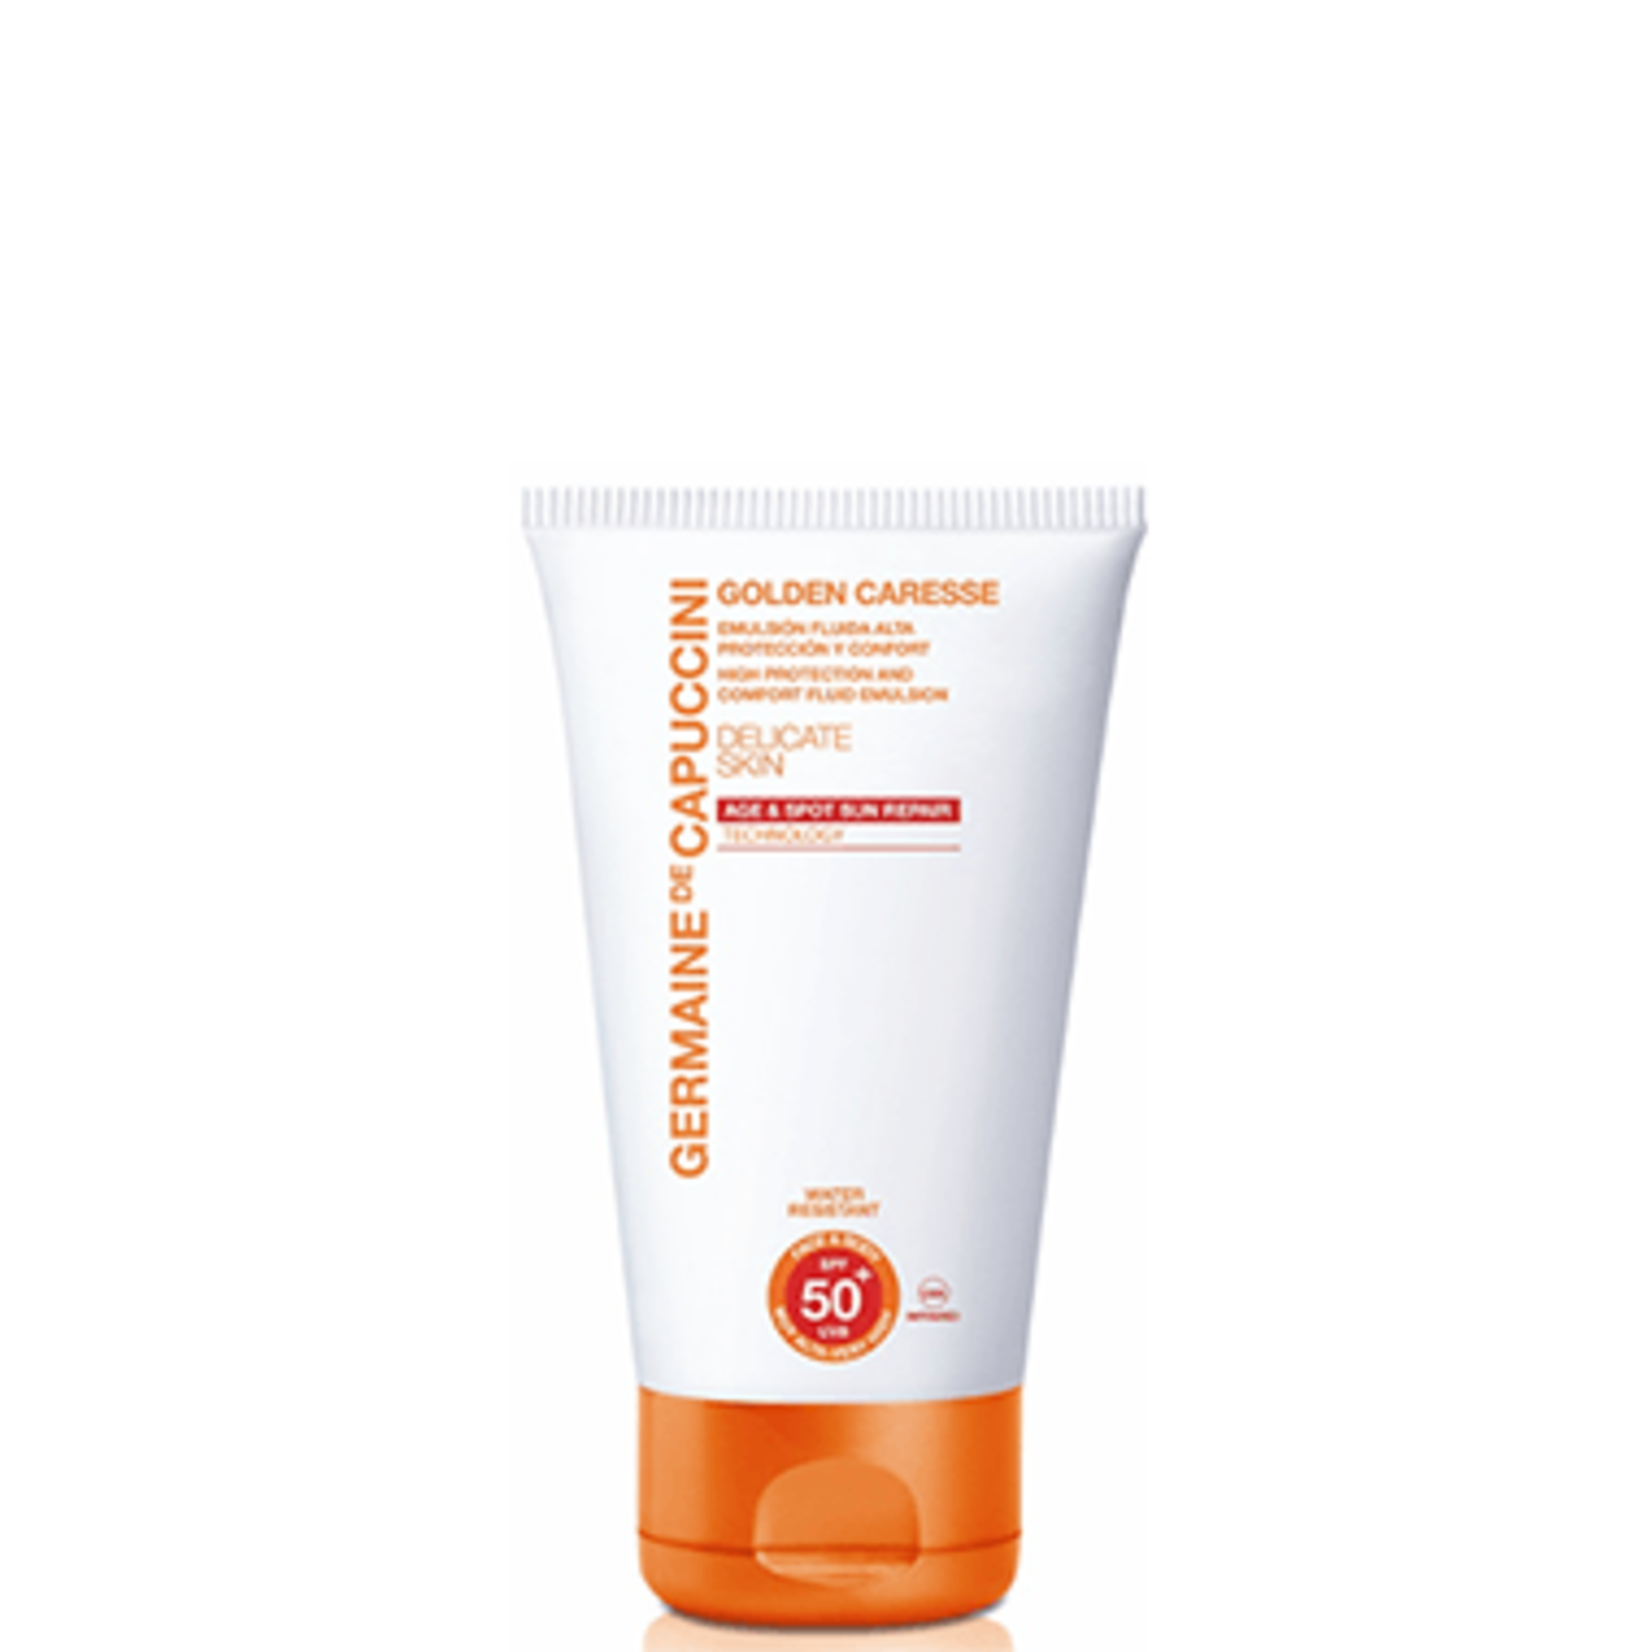 Germaine de Capuccini Sun Lover High Protection SPF50 + Icy Pleasure body promo